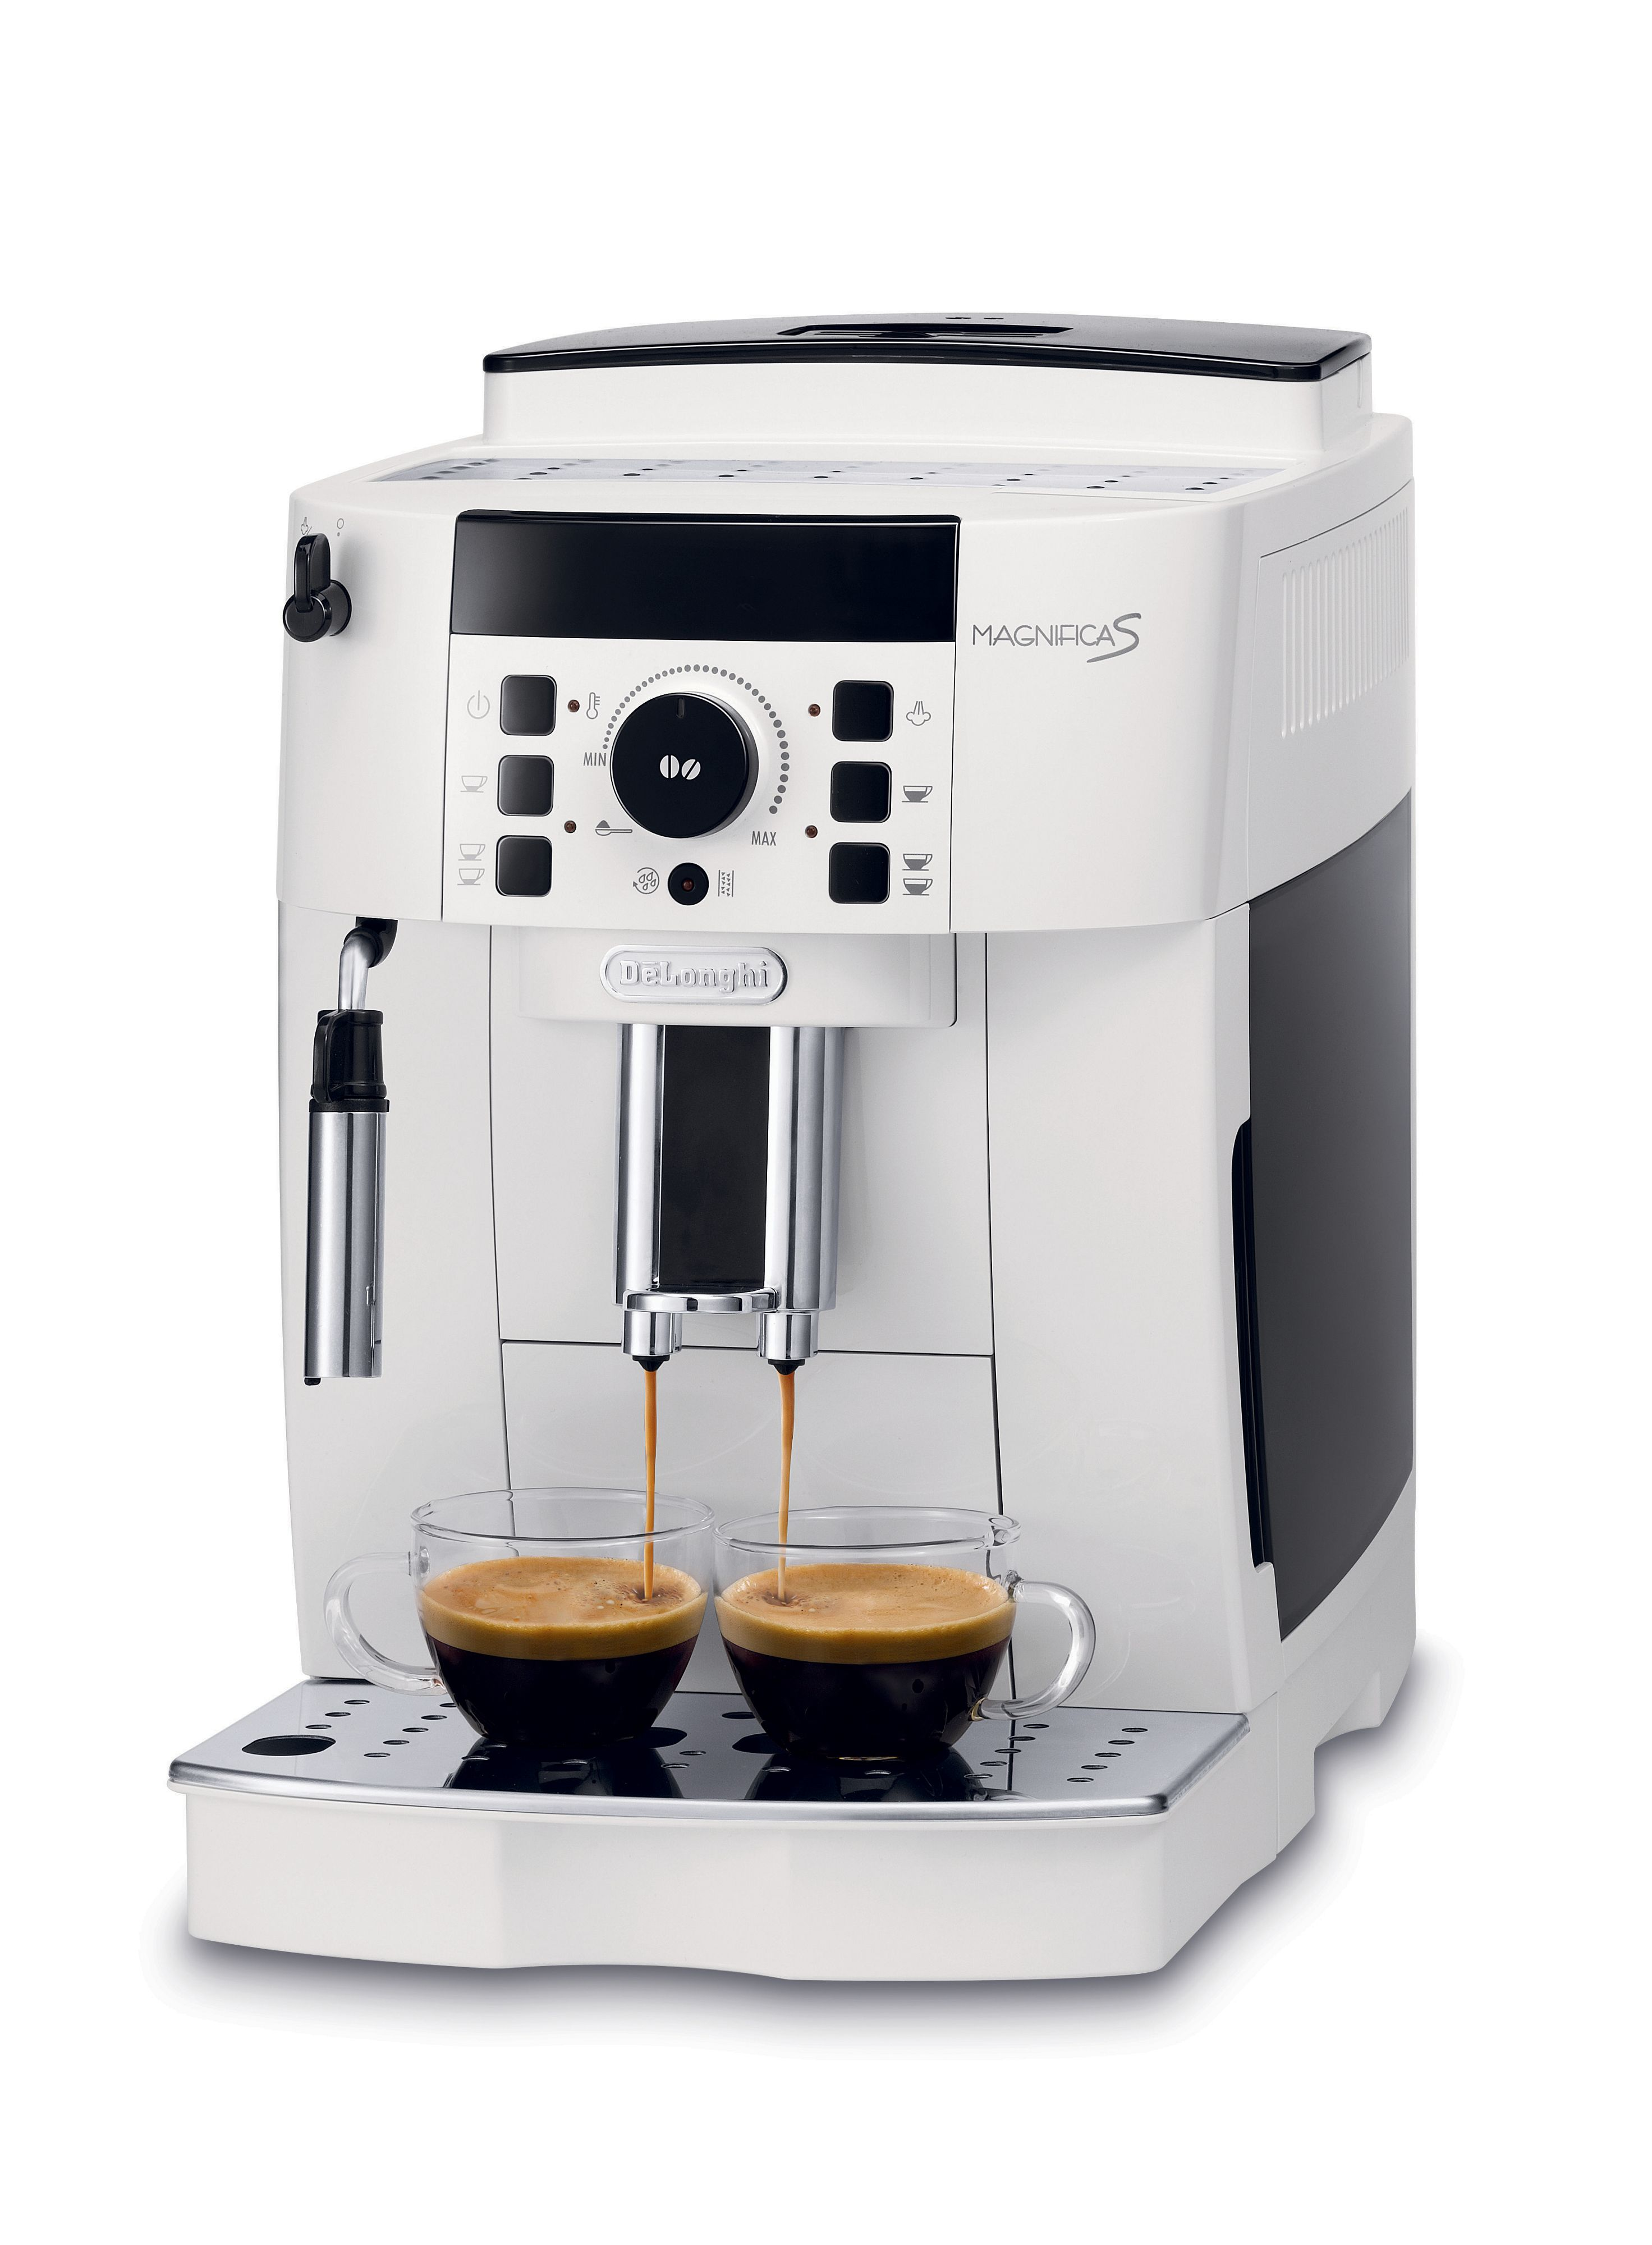 delonghi magnifica s bean to cup coffee machine bluewater. Black Bedroom Furniture Sets. Home Design Ideas